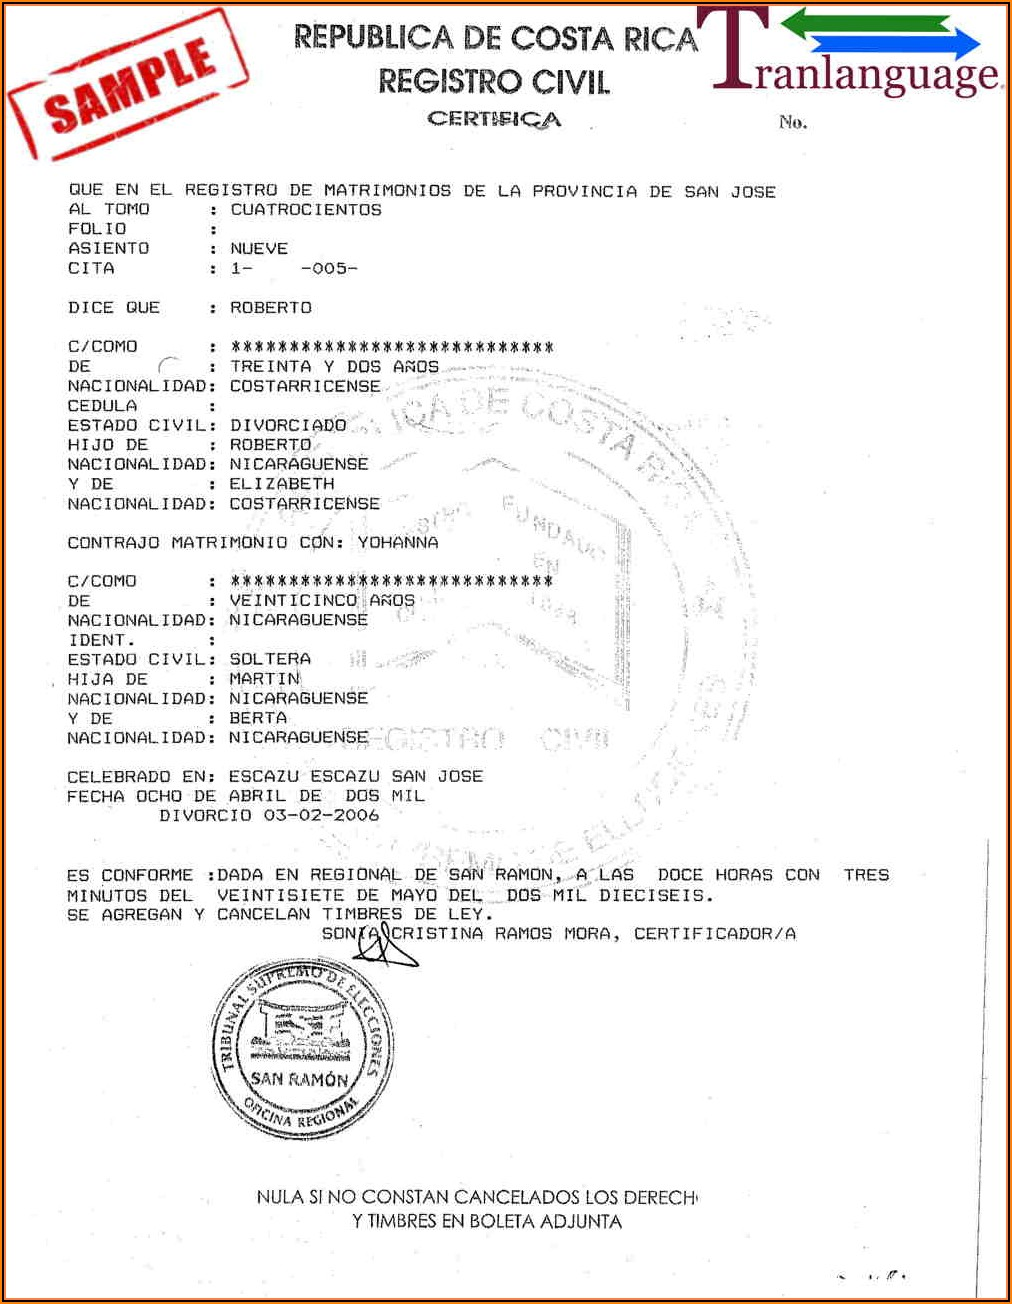 Free Marriage Certificate Translation Template From Spanish To English